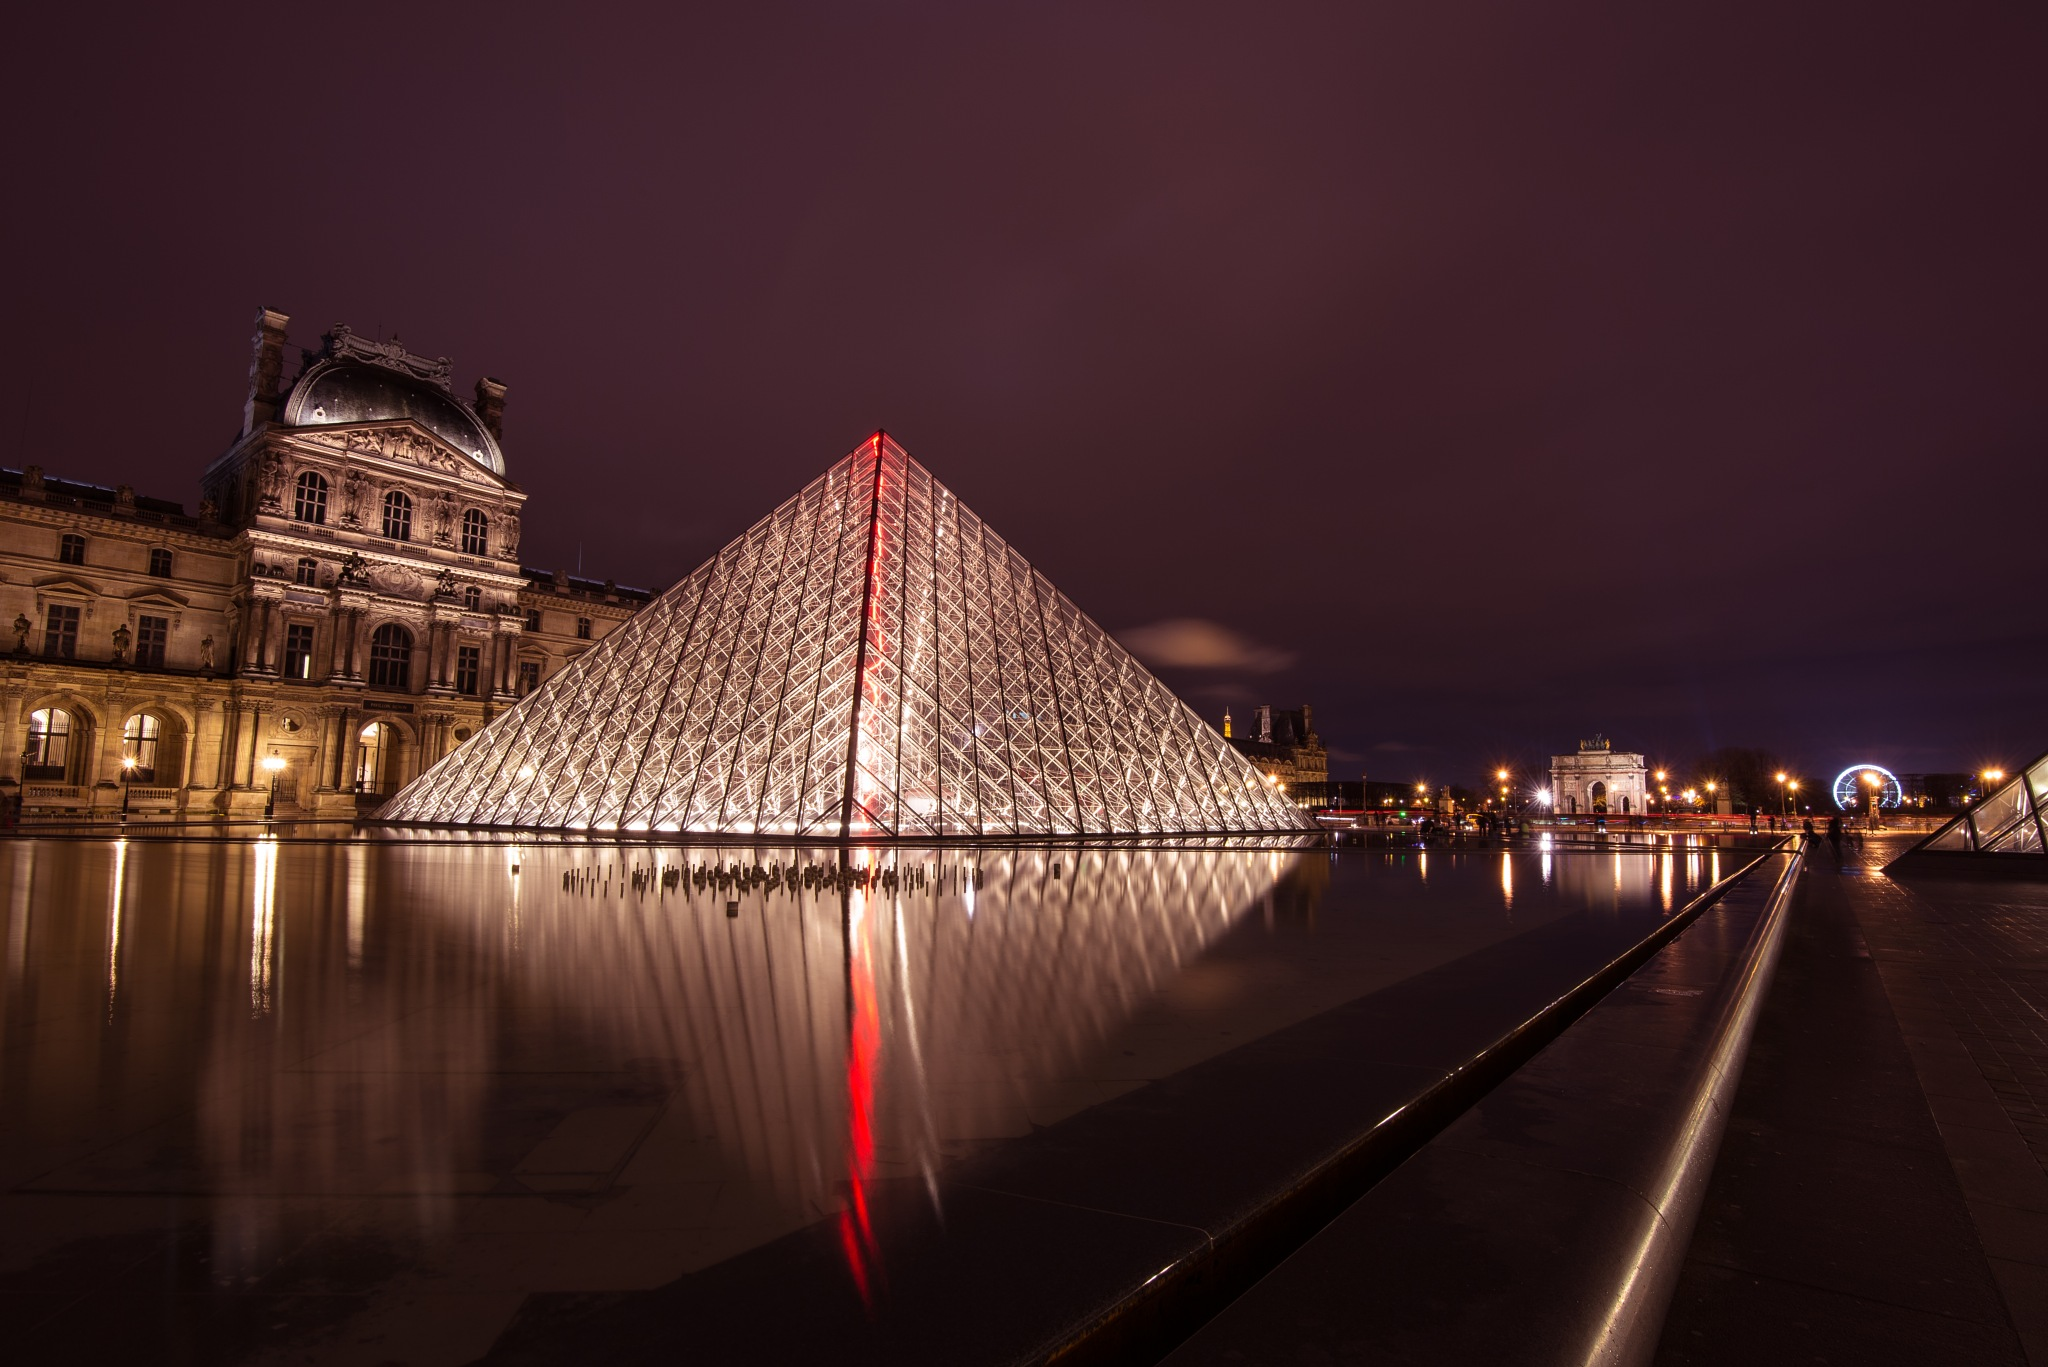 The Louvre by Ronne Vinkx